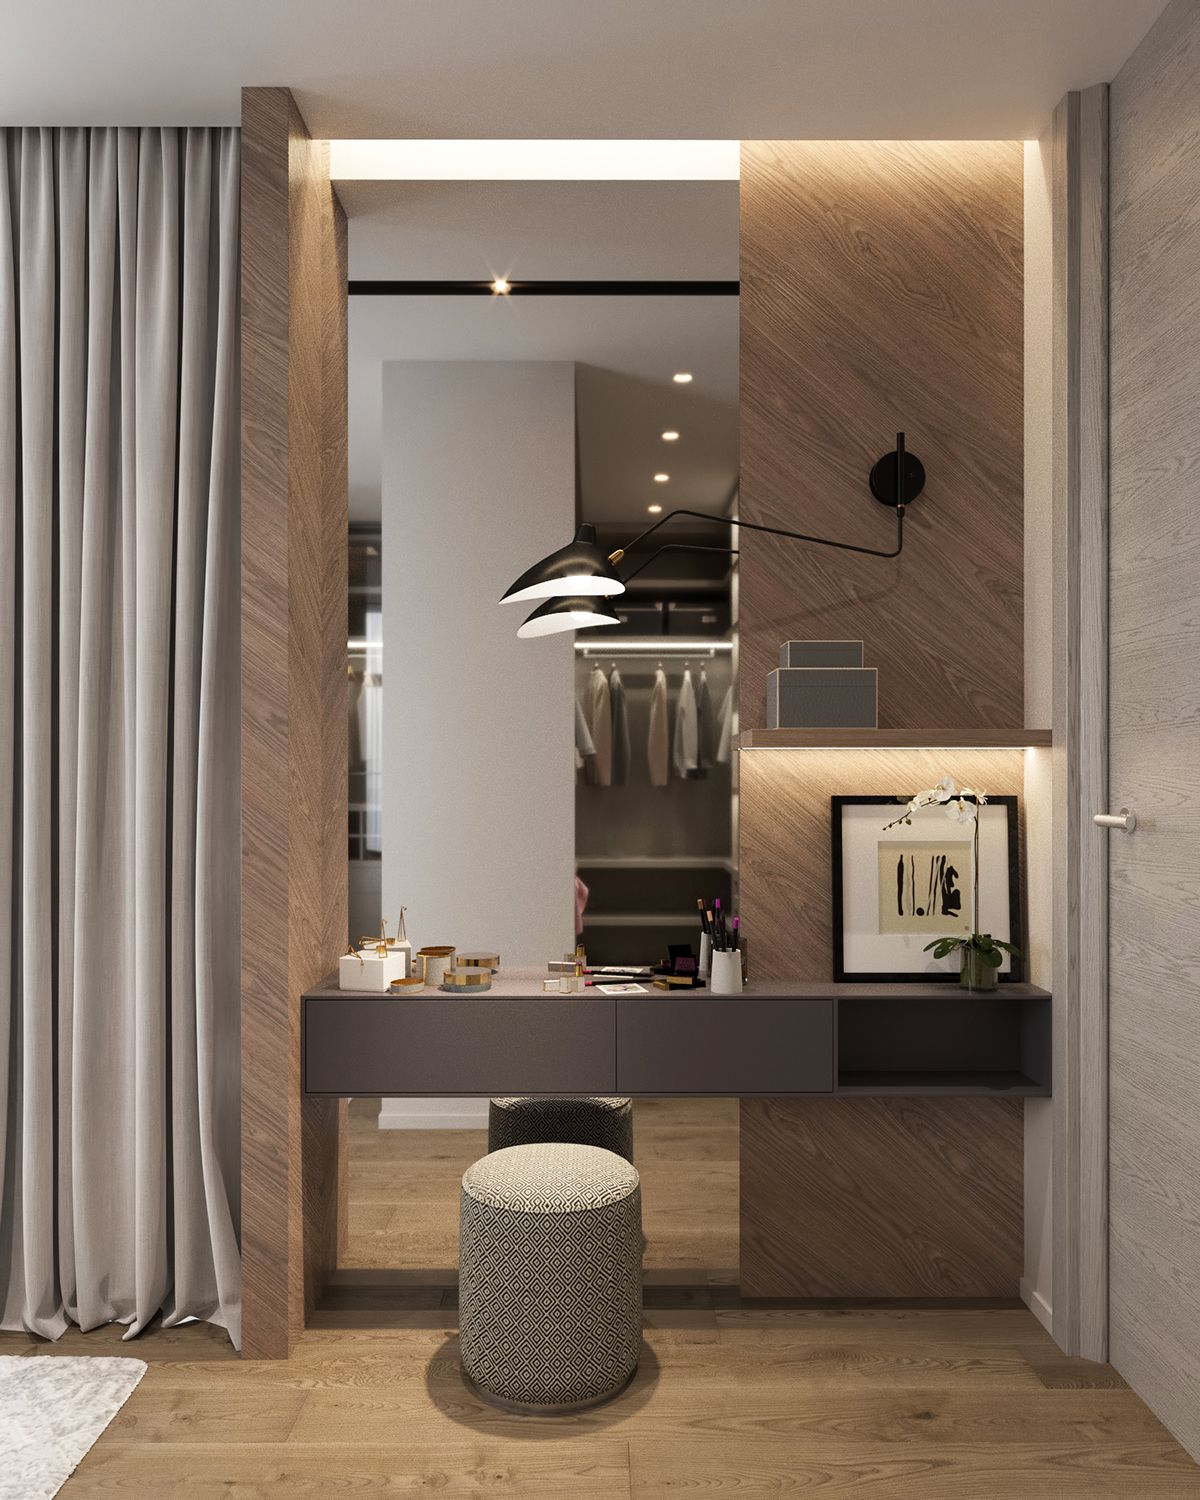 Dressing Rooms Designs Pictures: Dressing Table Design, Dressing